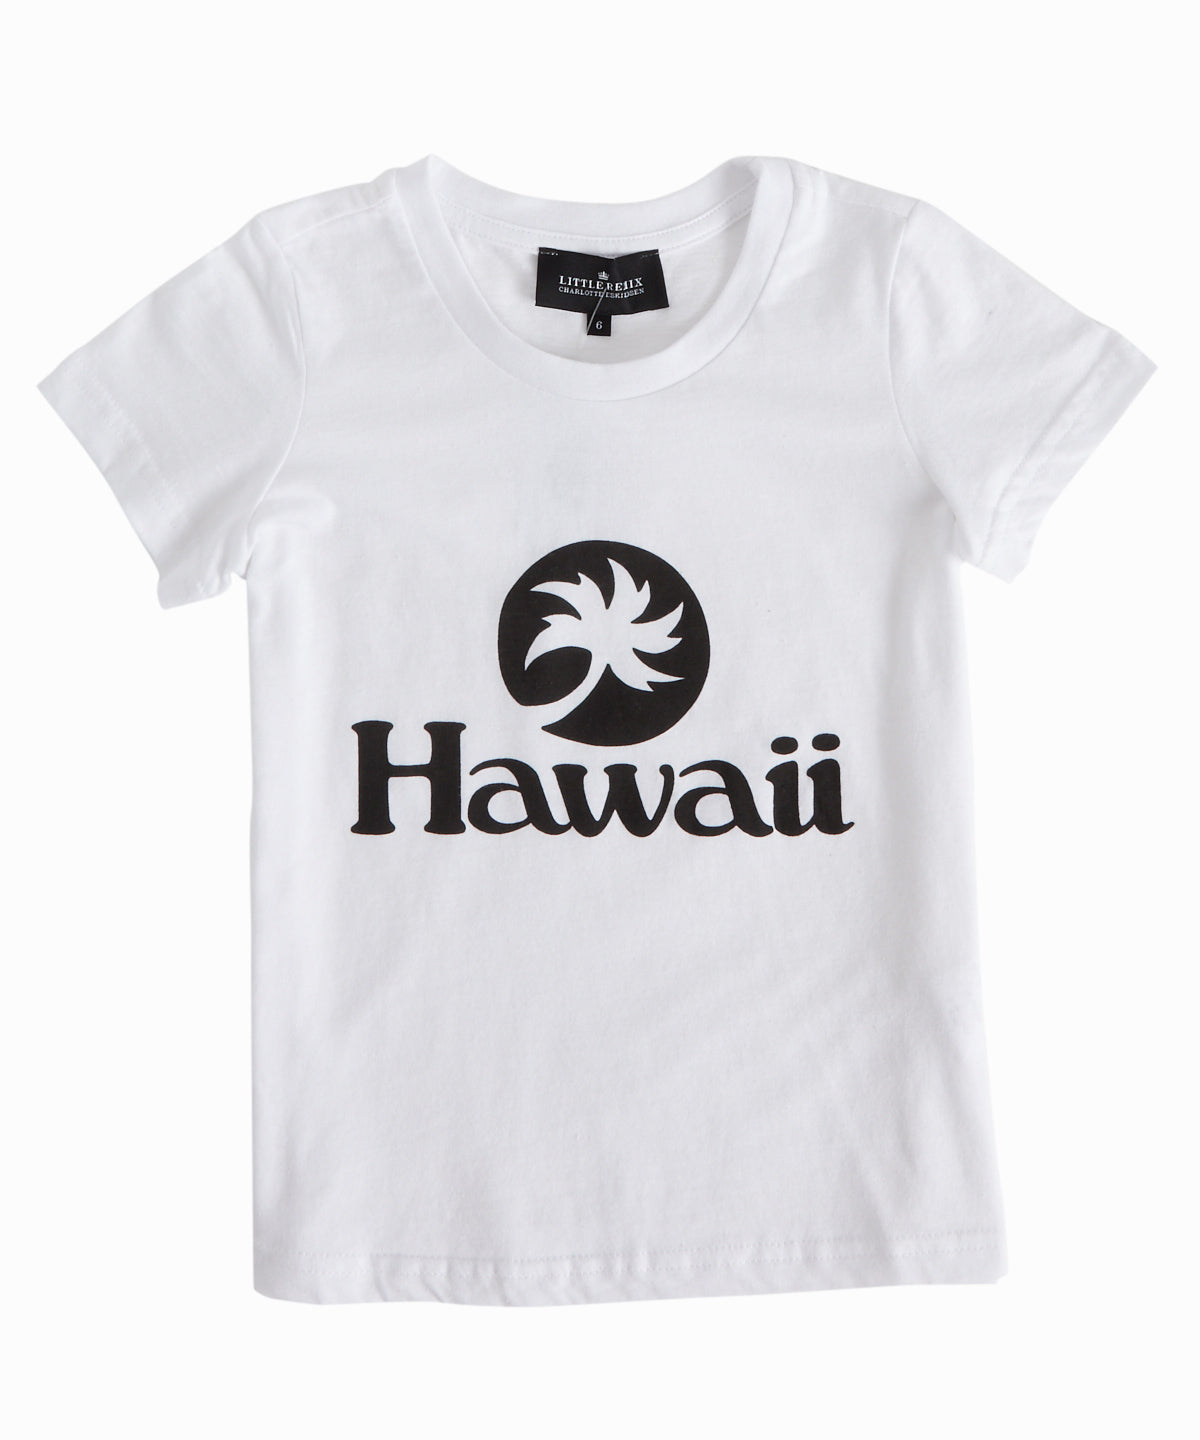 Stanley Hawaii Tee